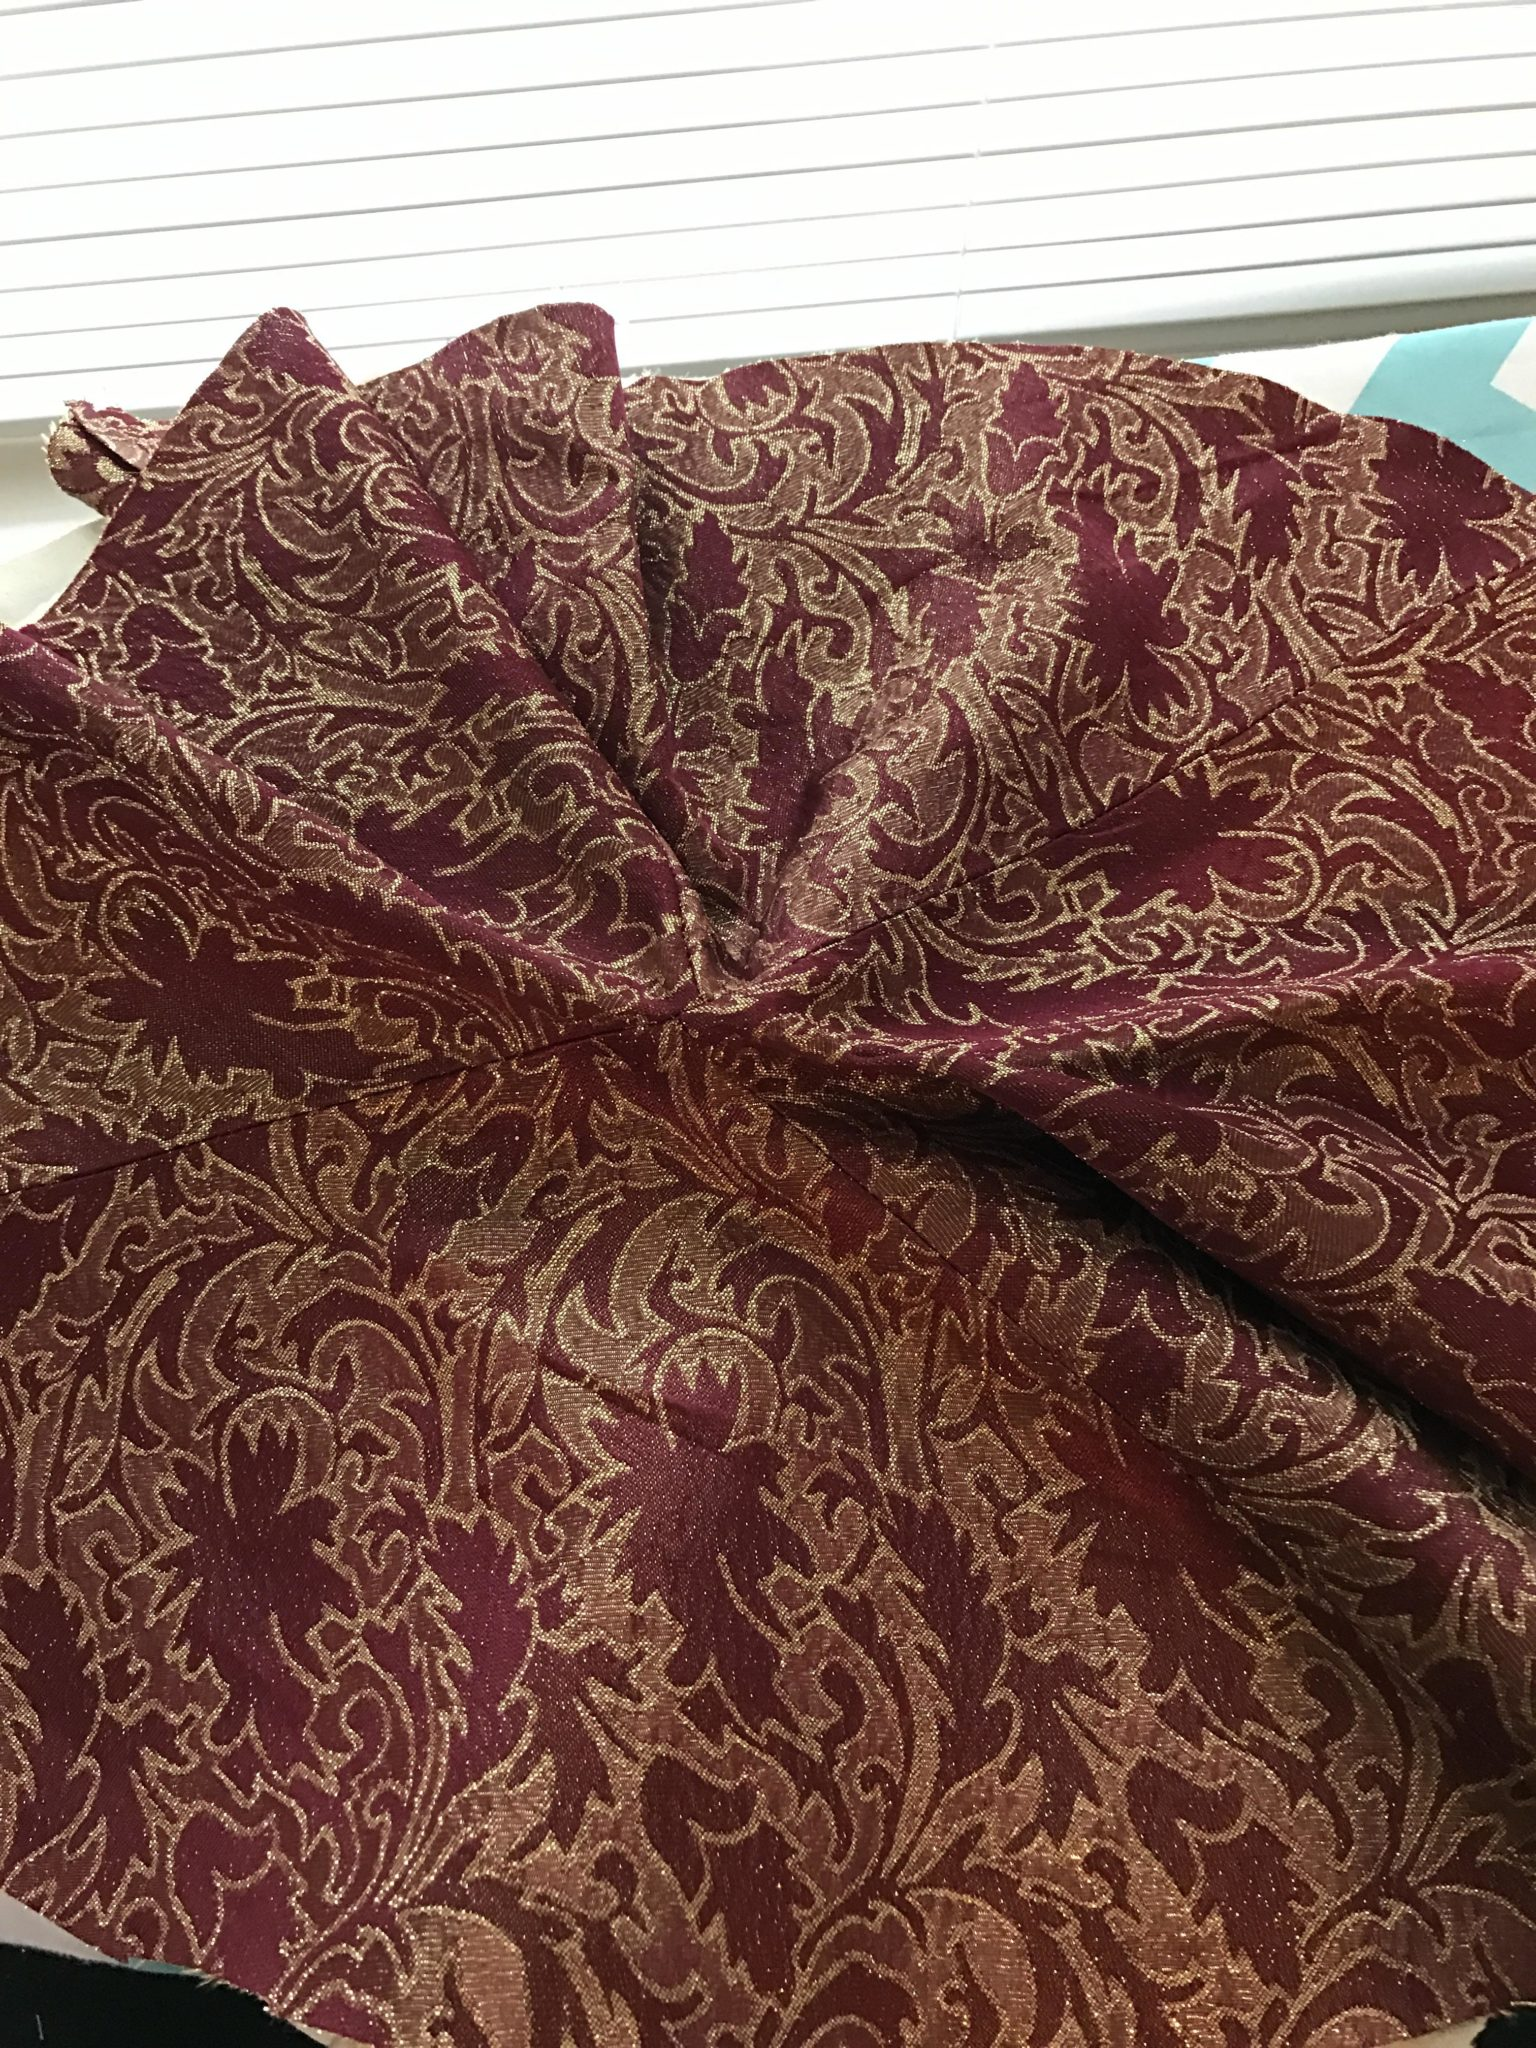 The brocade sewn together